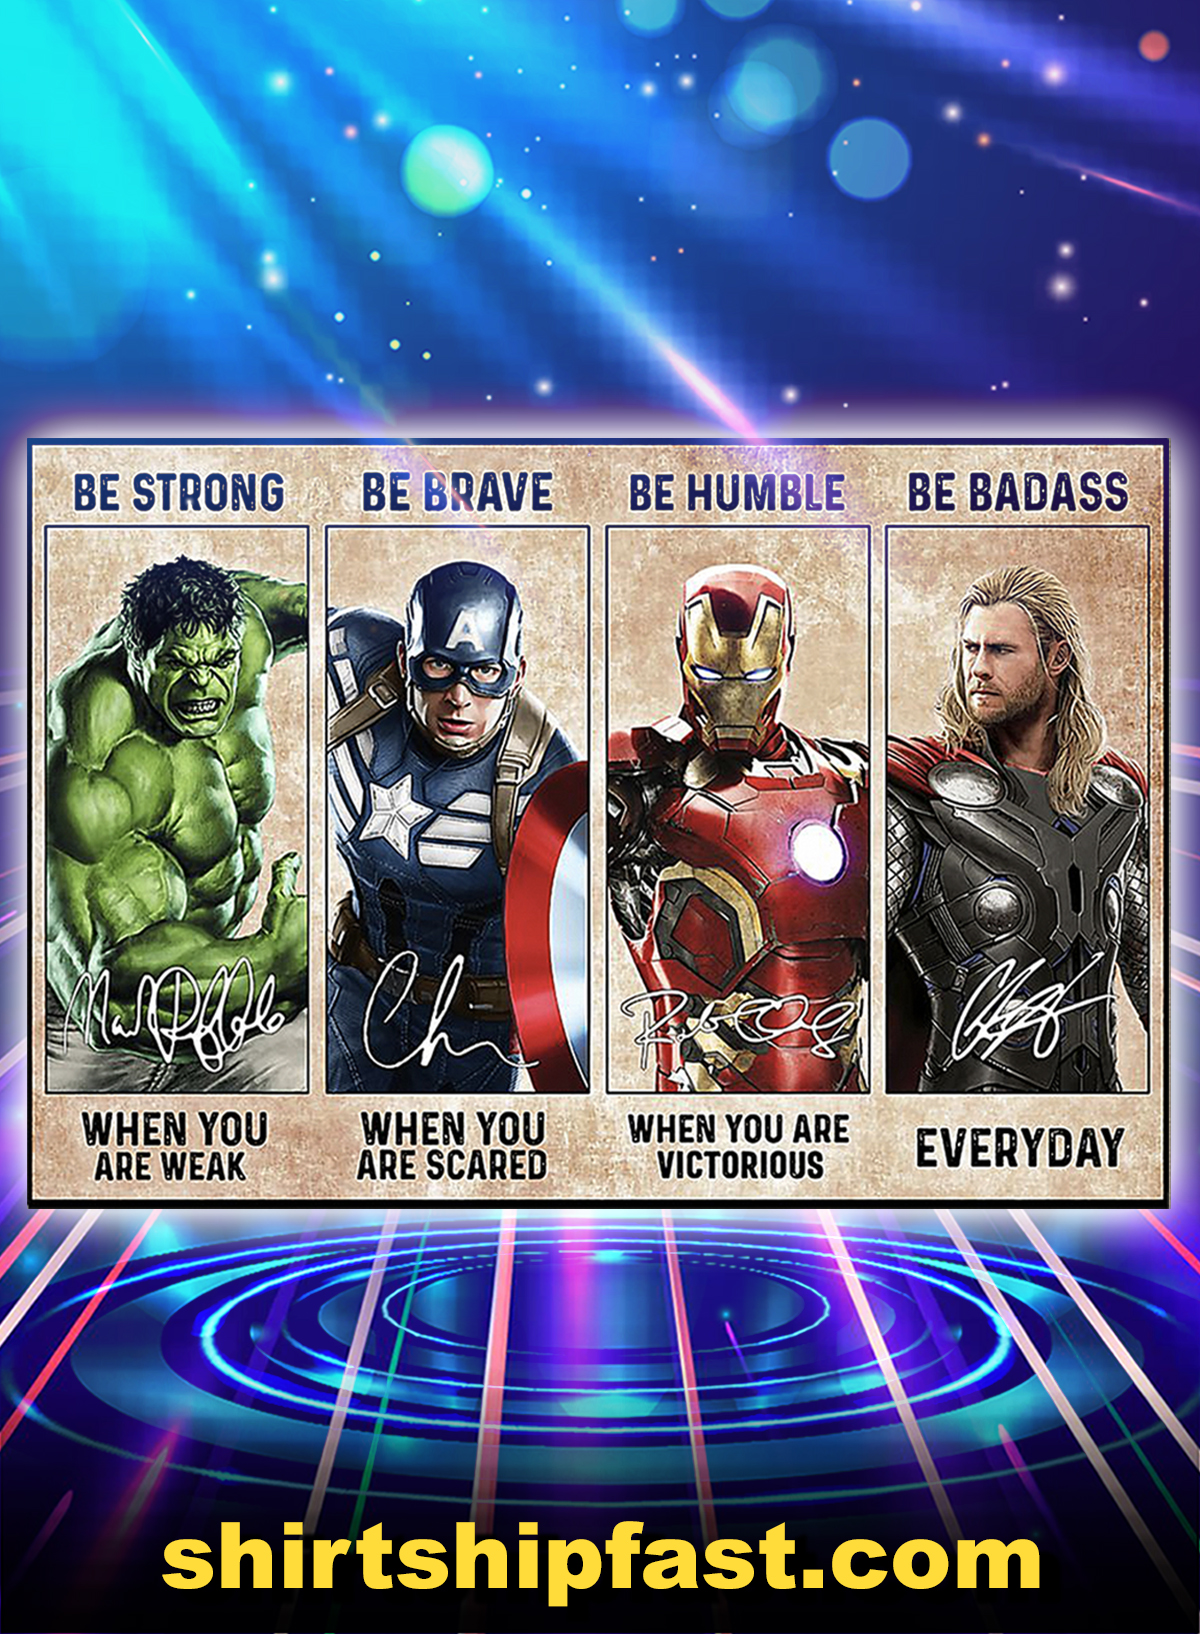 Poster Avengers be strong be brave be humble be badass - A1